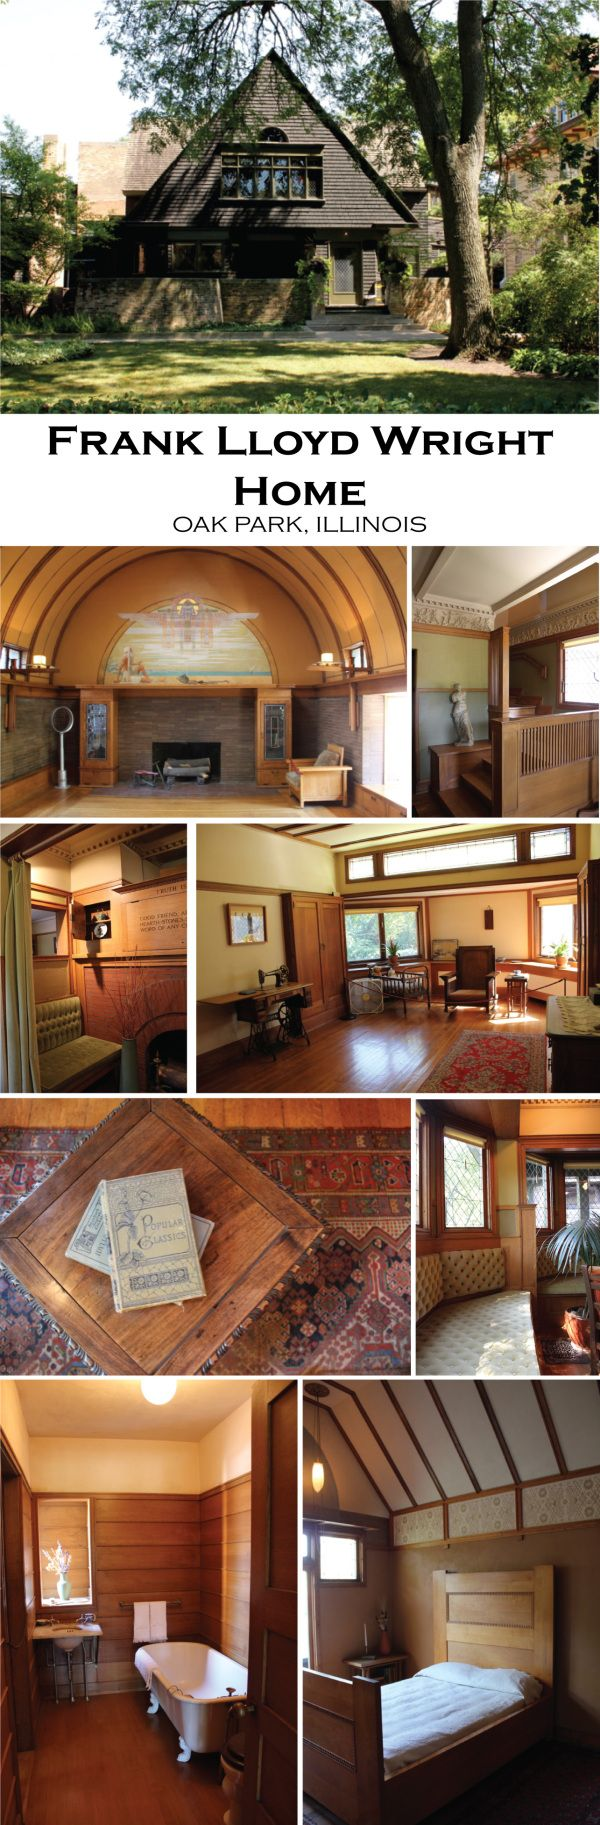 Frank Lloyd Wright Home and Studio. Oak Park, Illinois. 1889-1898